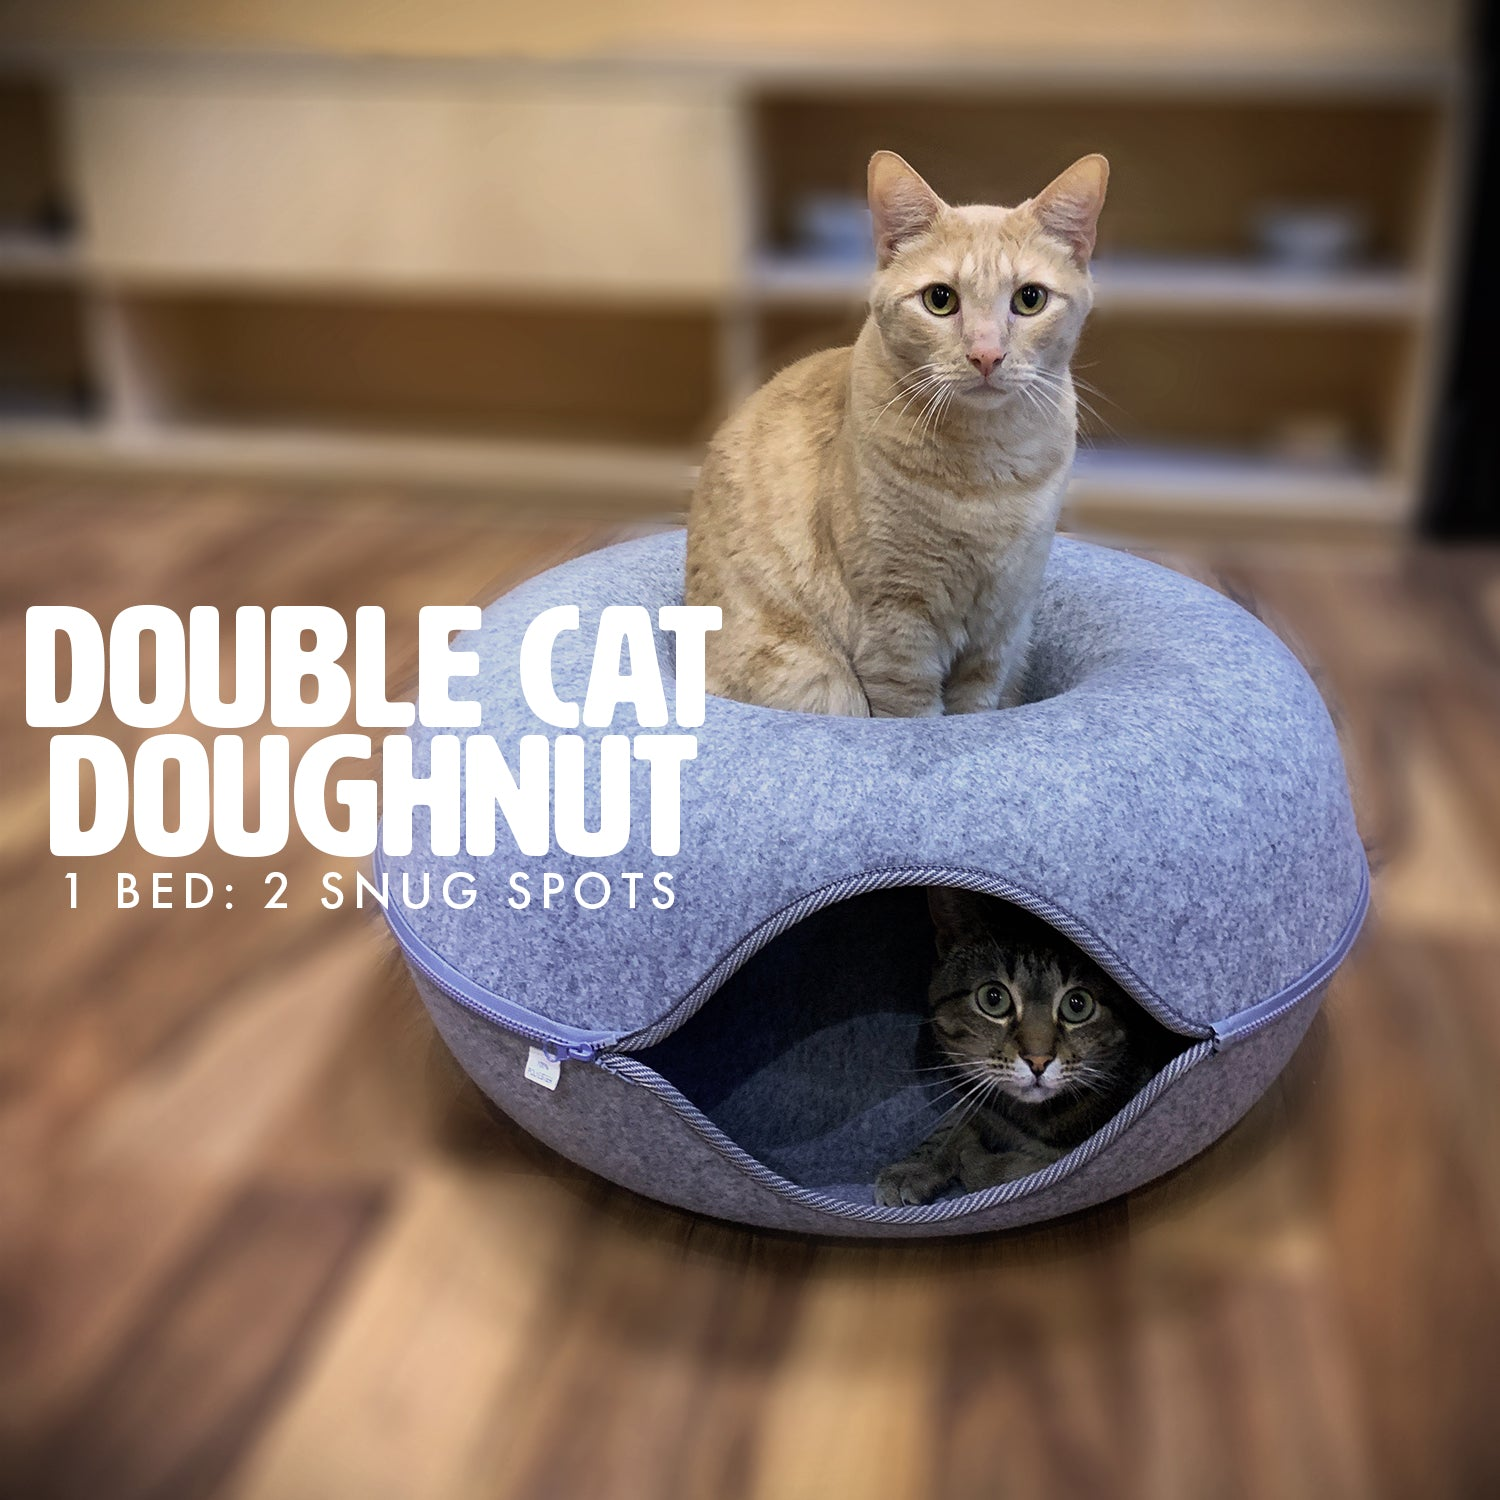 Double Cat Doughnut Bed